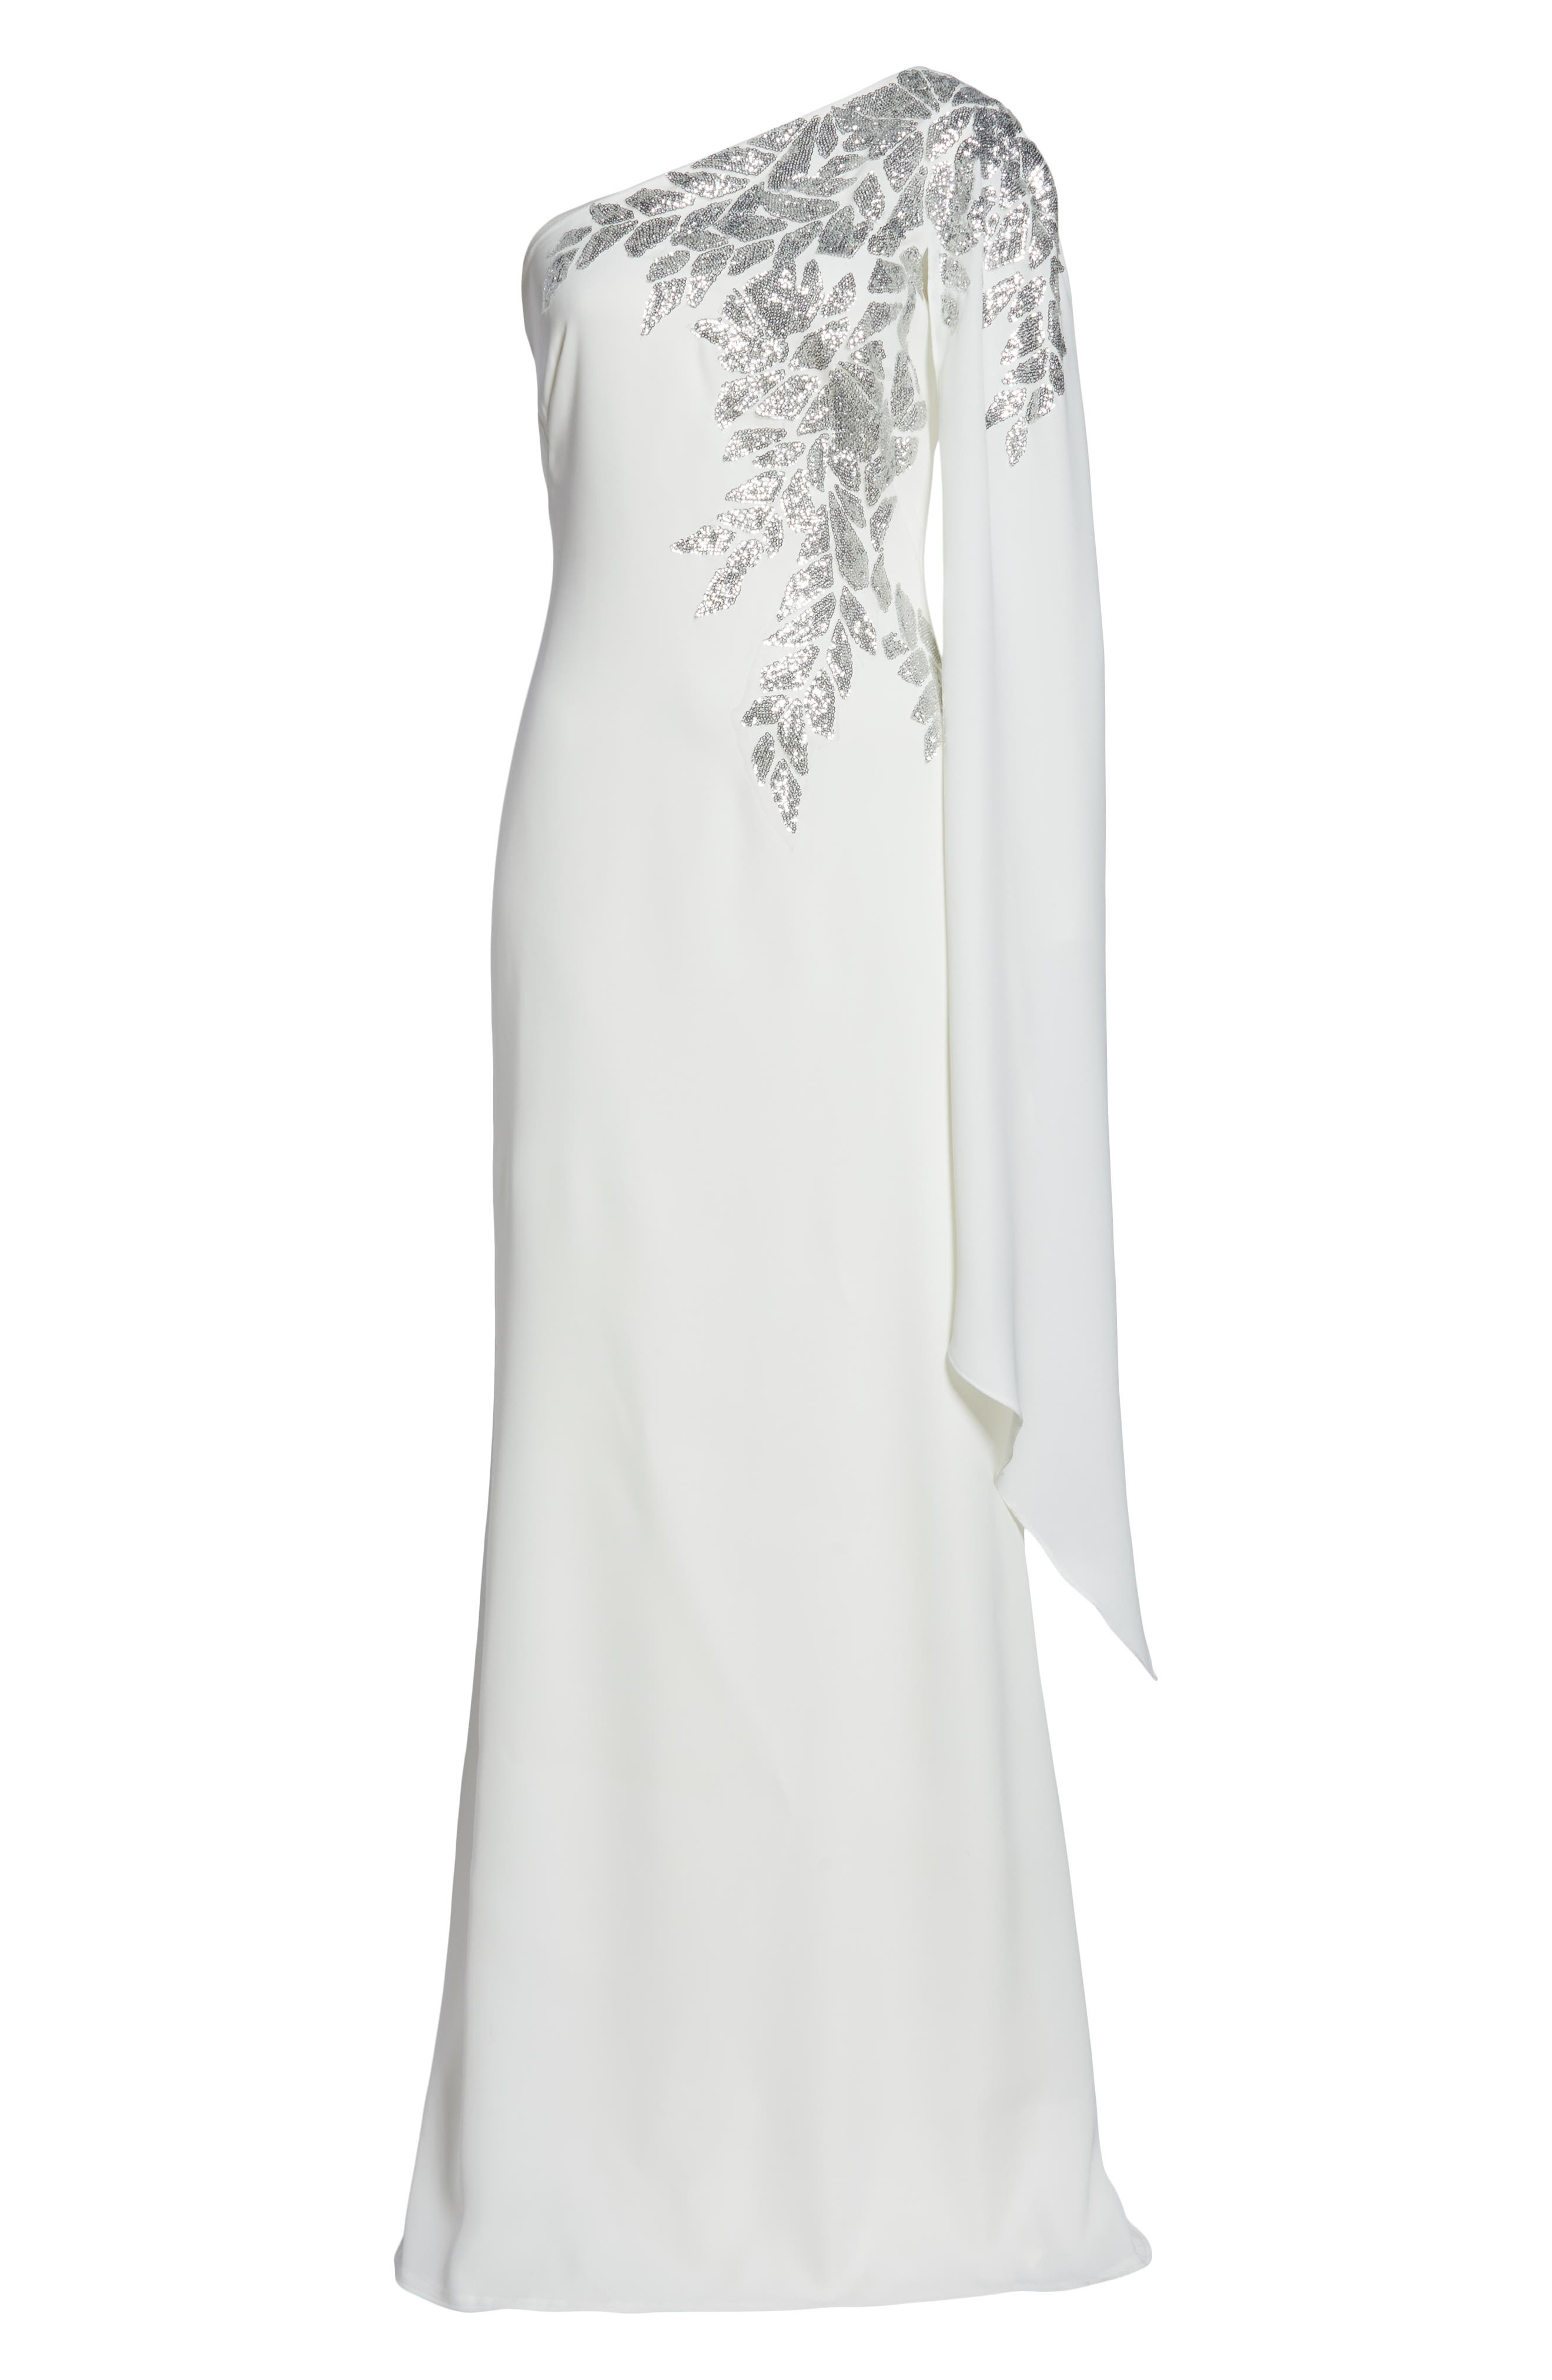 TADASHI SHOJI,                             Cape Sleeve Crepe Evening Dress,                             Alternate thumbnail 7, color,                             IVORY/ SILVER